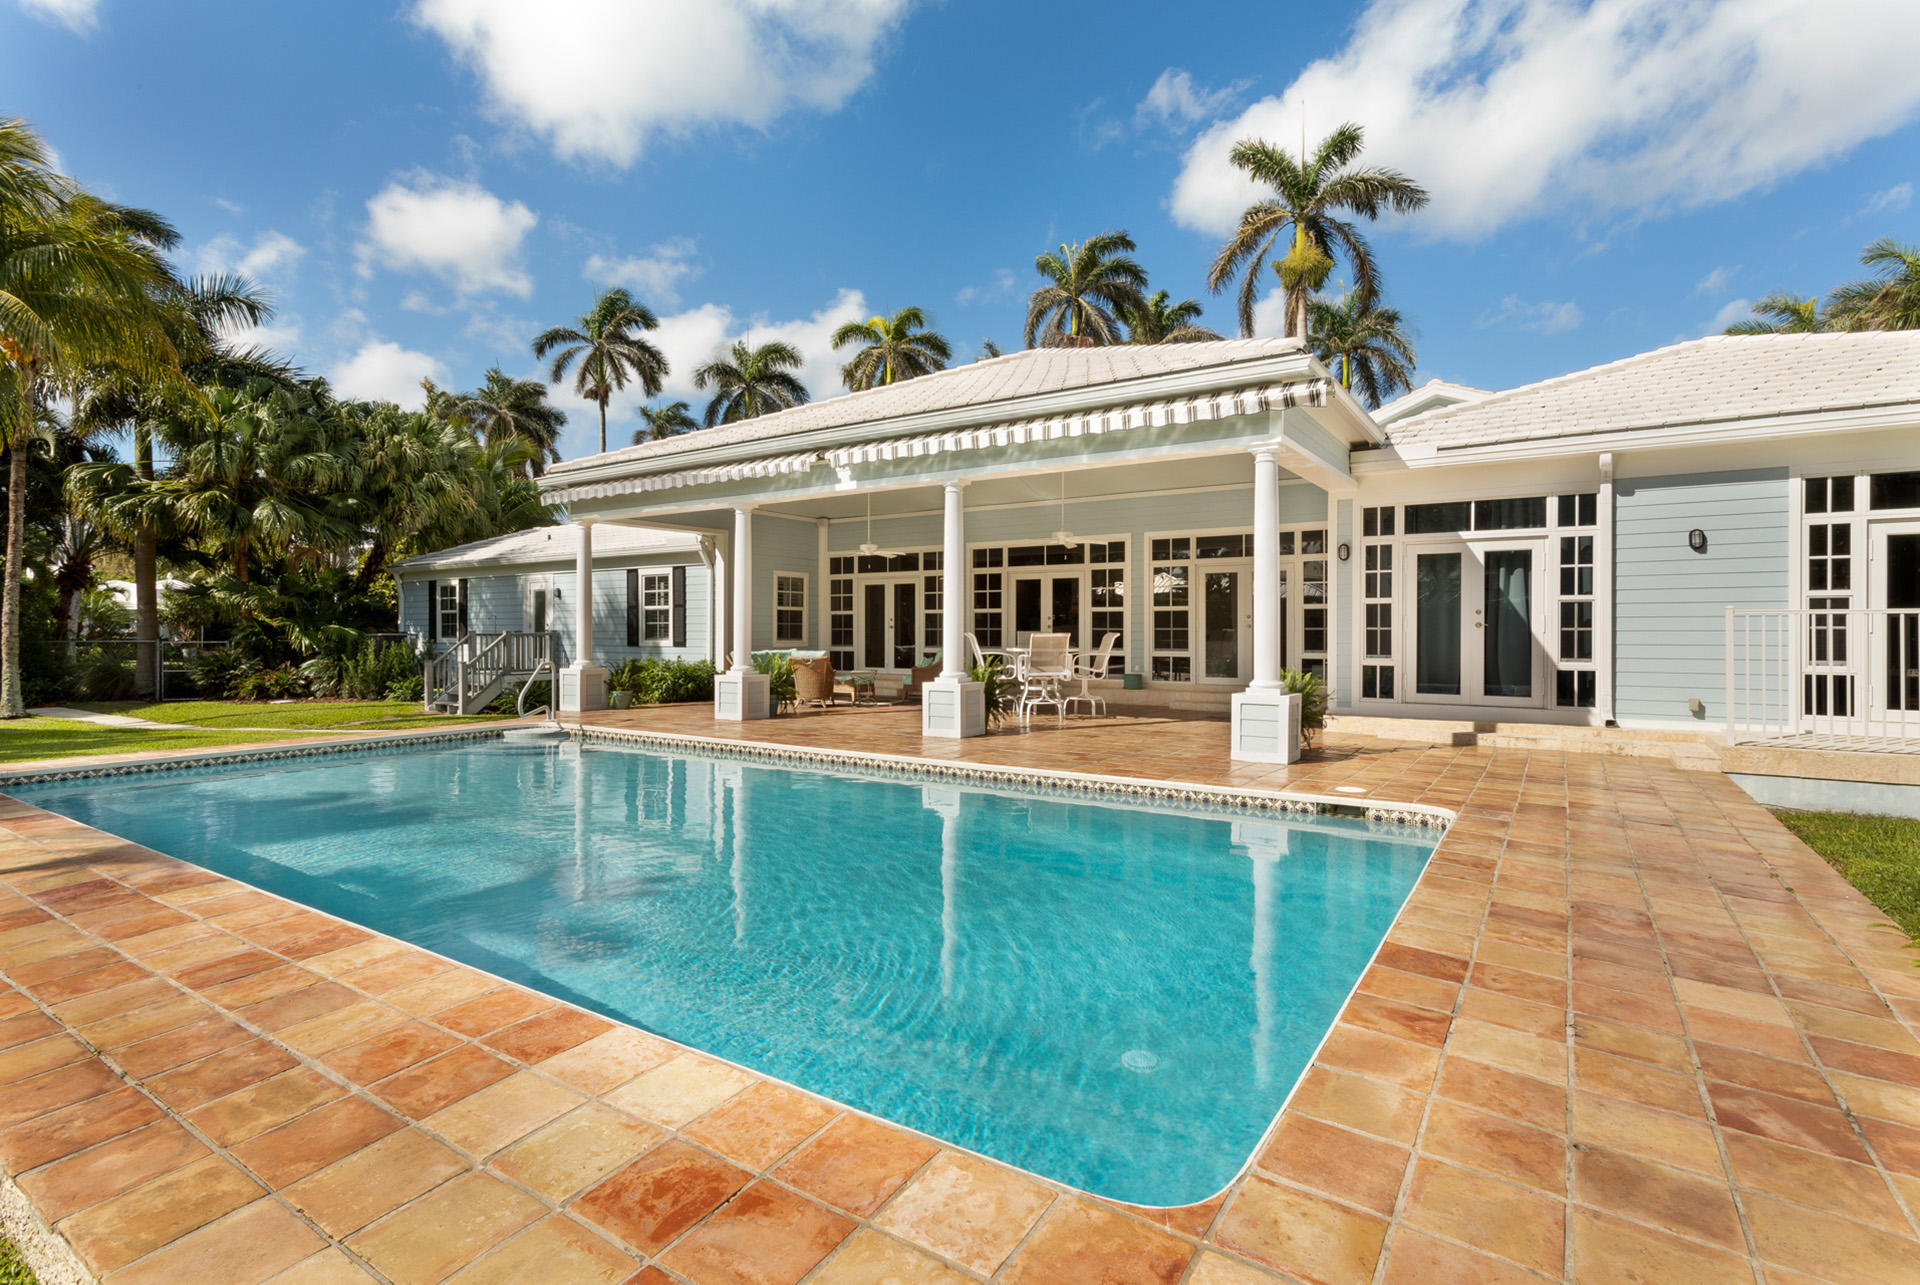 1101 Thomas Street, Delray Beach, Florida 33483, 4 Bedrooms Bedrooms, ,3.1 BathroomsBathrooms,Single Family Detached,For Sale,Thomas,RX-10699065